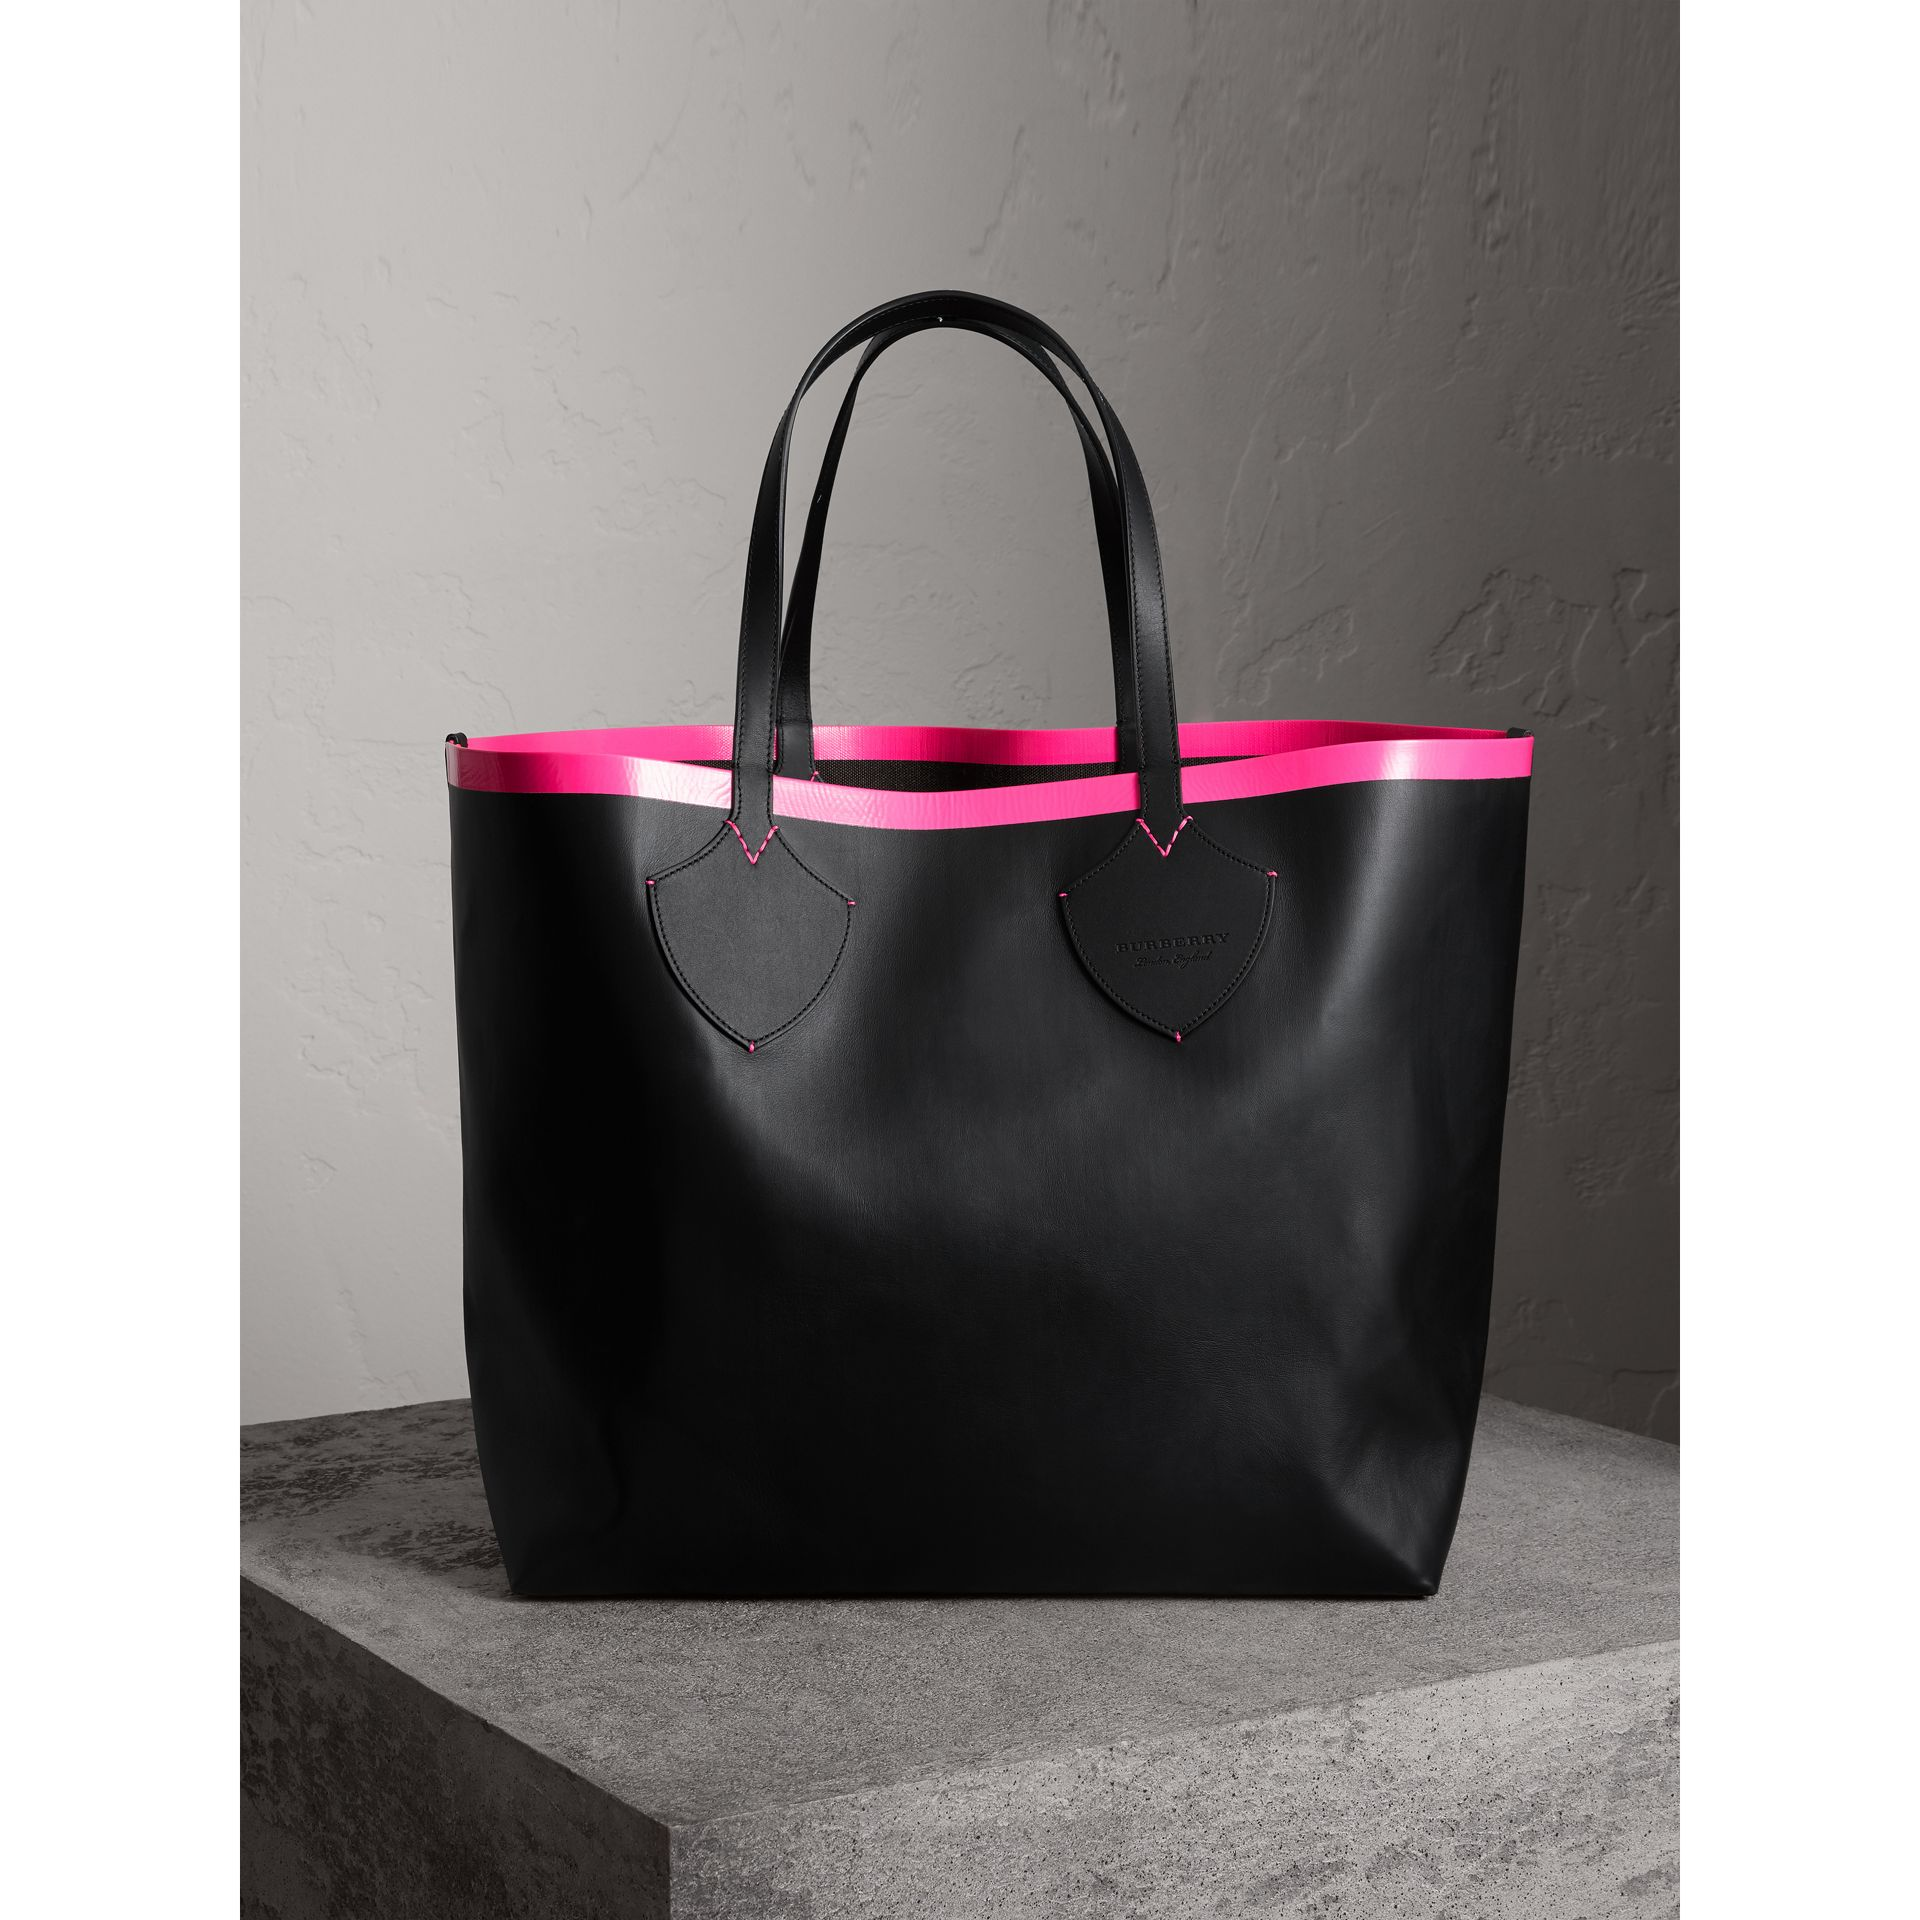 Borsa tote The Giant reversibile in cotone con motivo Canvas check e pelle (Nero/rosa Neon) | Burberry - immagine della galleria 5